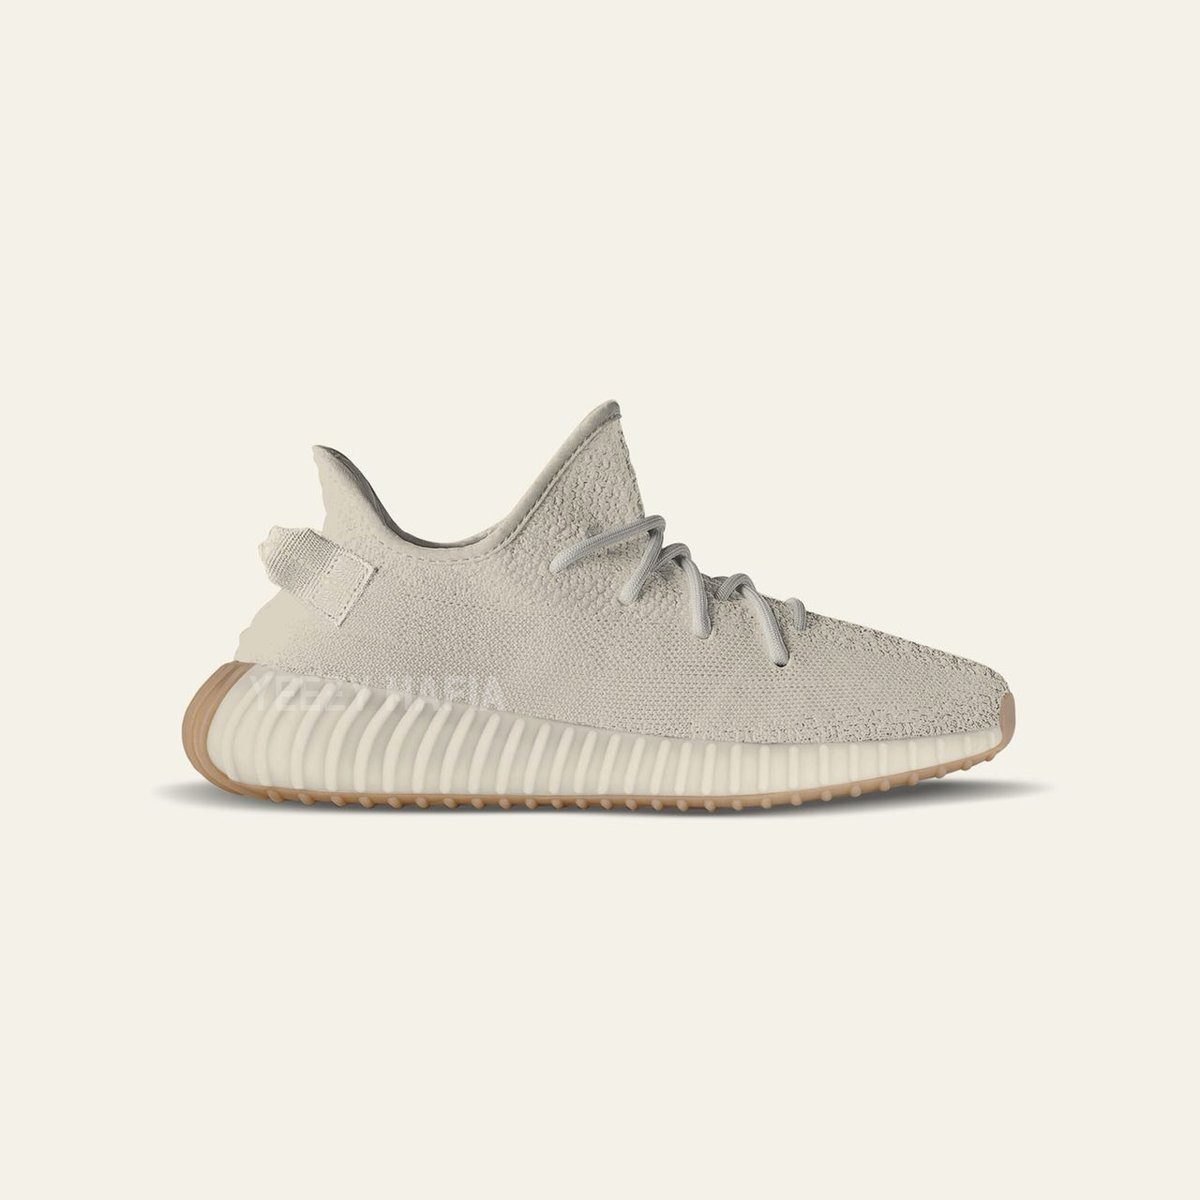 yeezy-boost-350-v2-sesame-f99710-release-201808